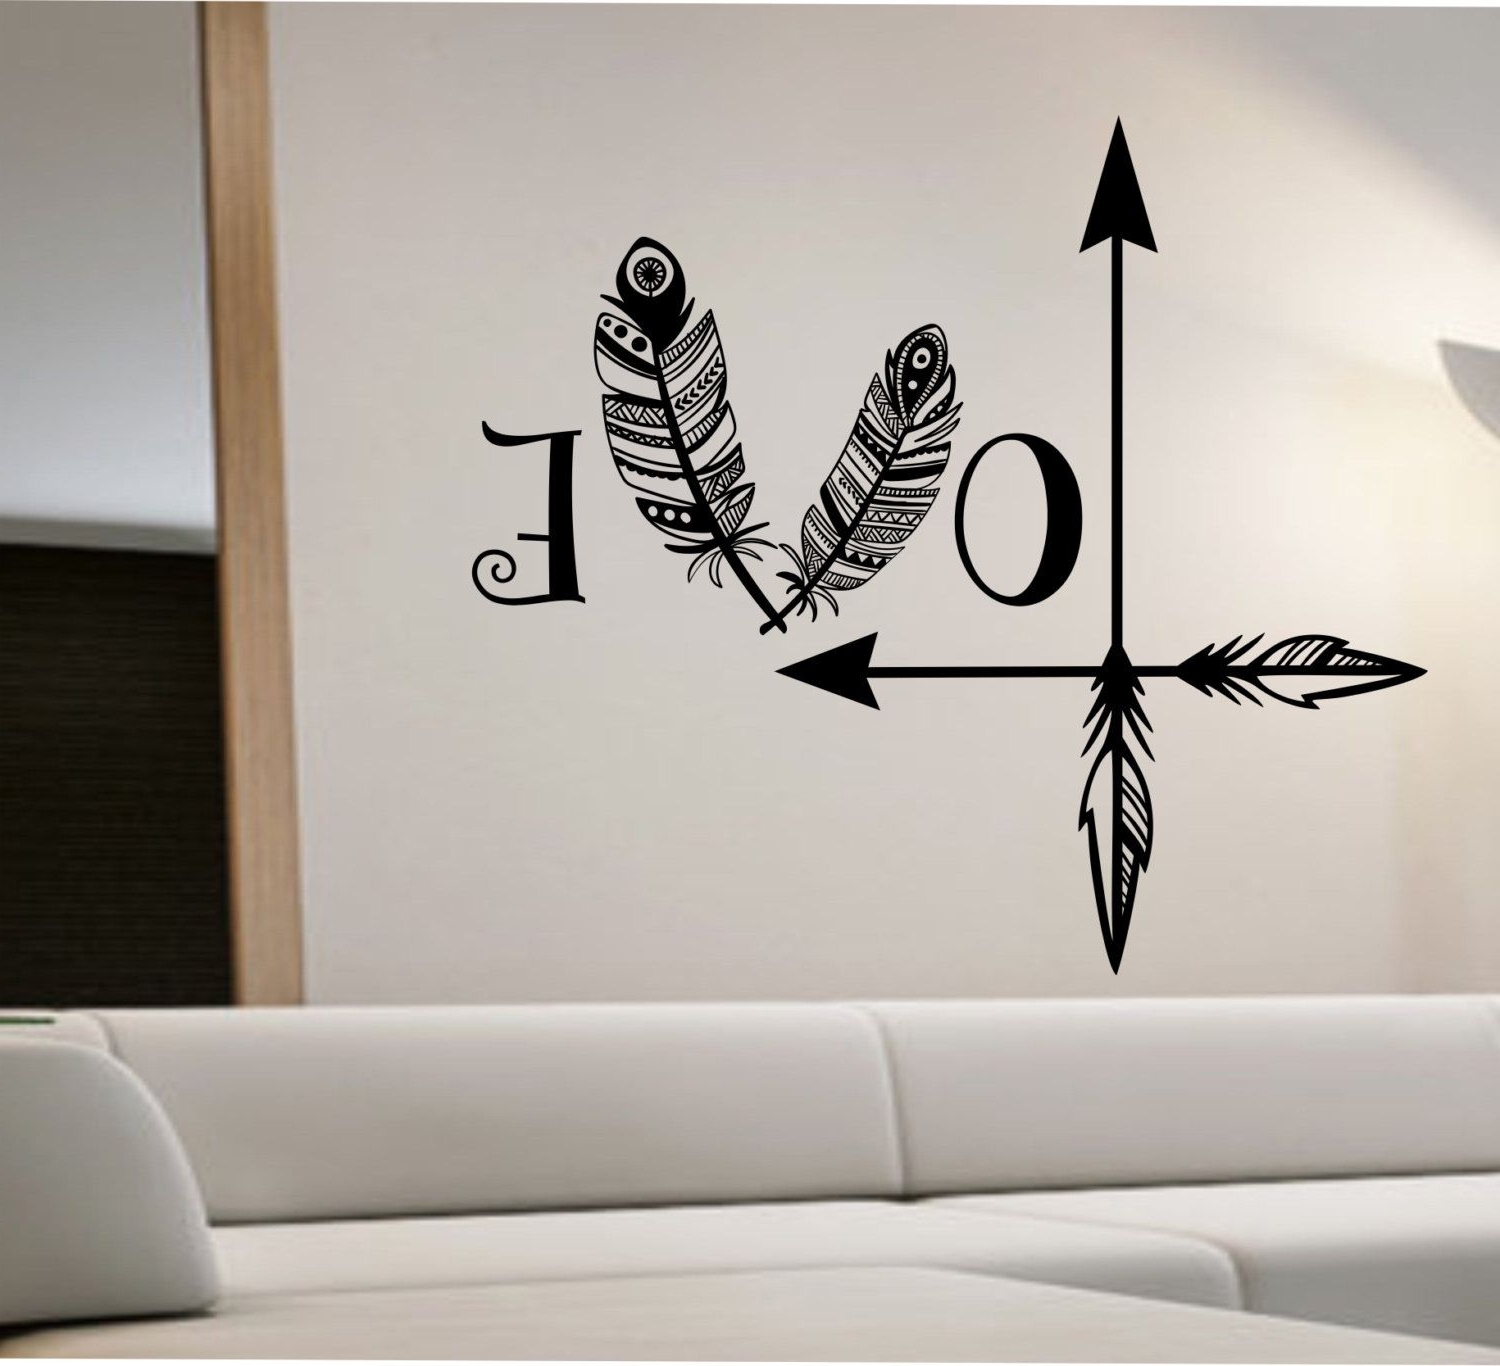 Love Arrow Wall Decal Feather Namaste Vinyl Sticker Art Decor Intended For Best And Newest Love Wall Art (View 7 of 15)